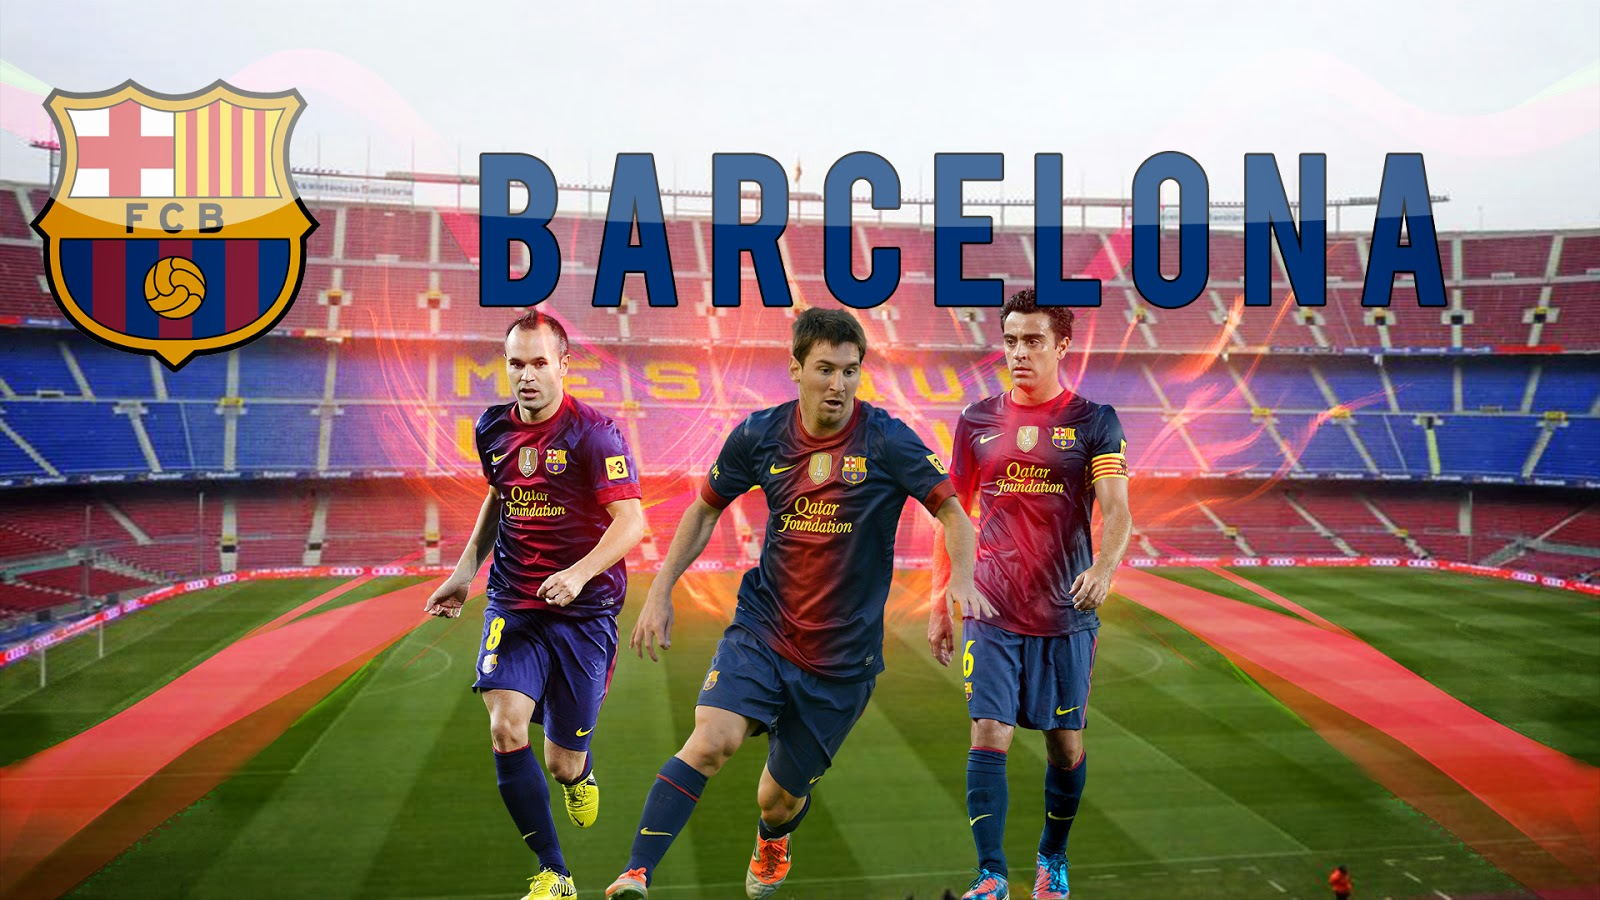 Iniesta messi xavi barcelona fc free wallpaper hd background you can download wallapper iniesta messi xavi barcelona fc free wallpaper hd for free in herenally dont forget to share voltagebd Gallery